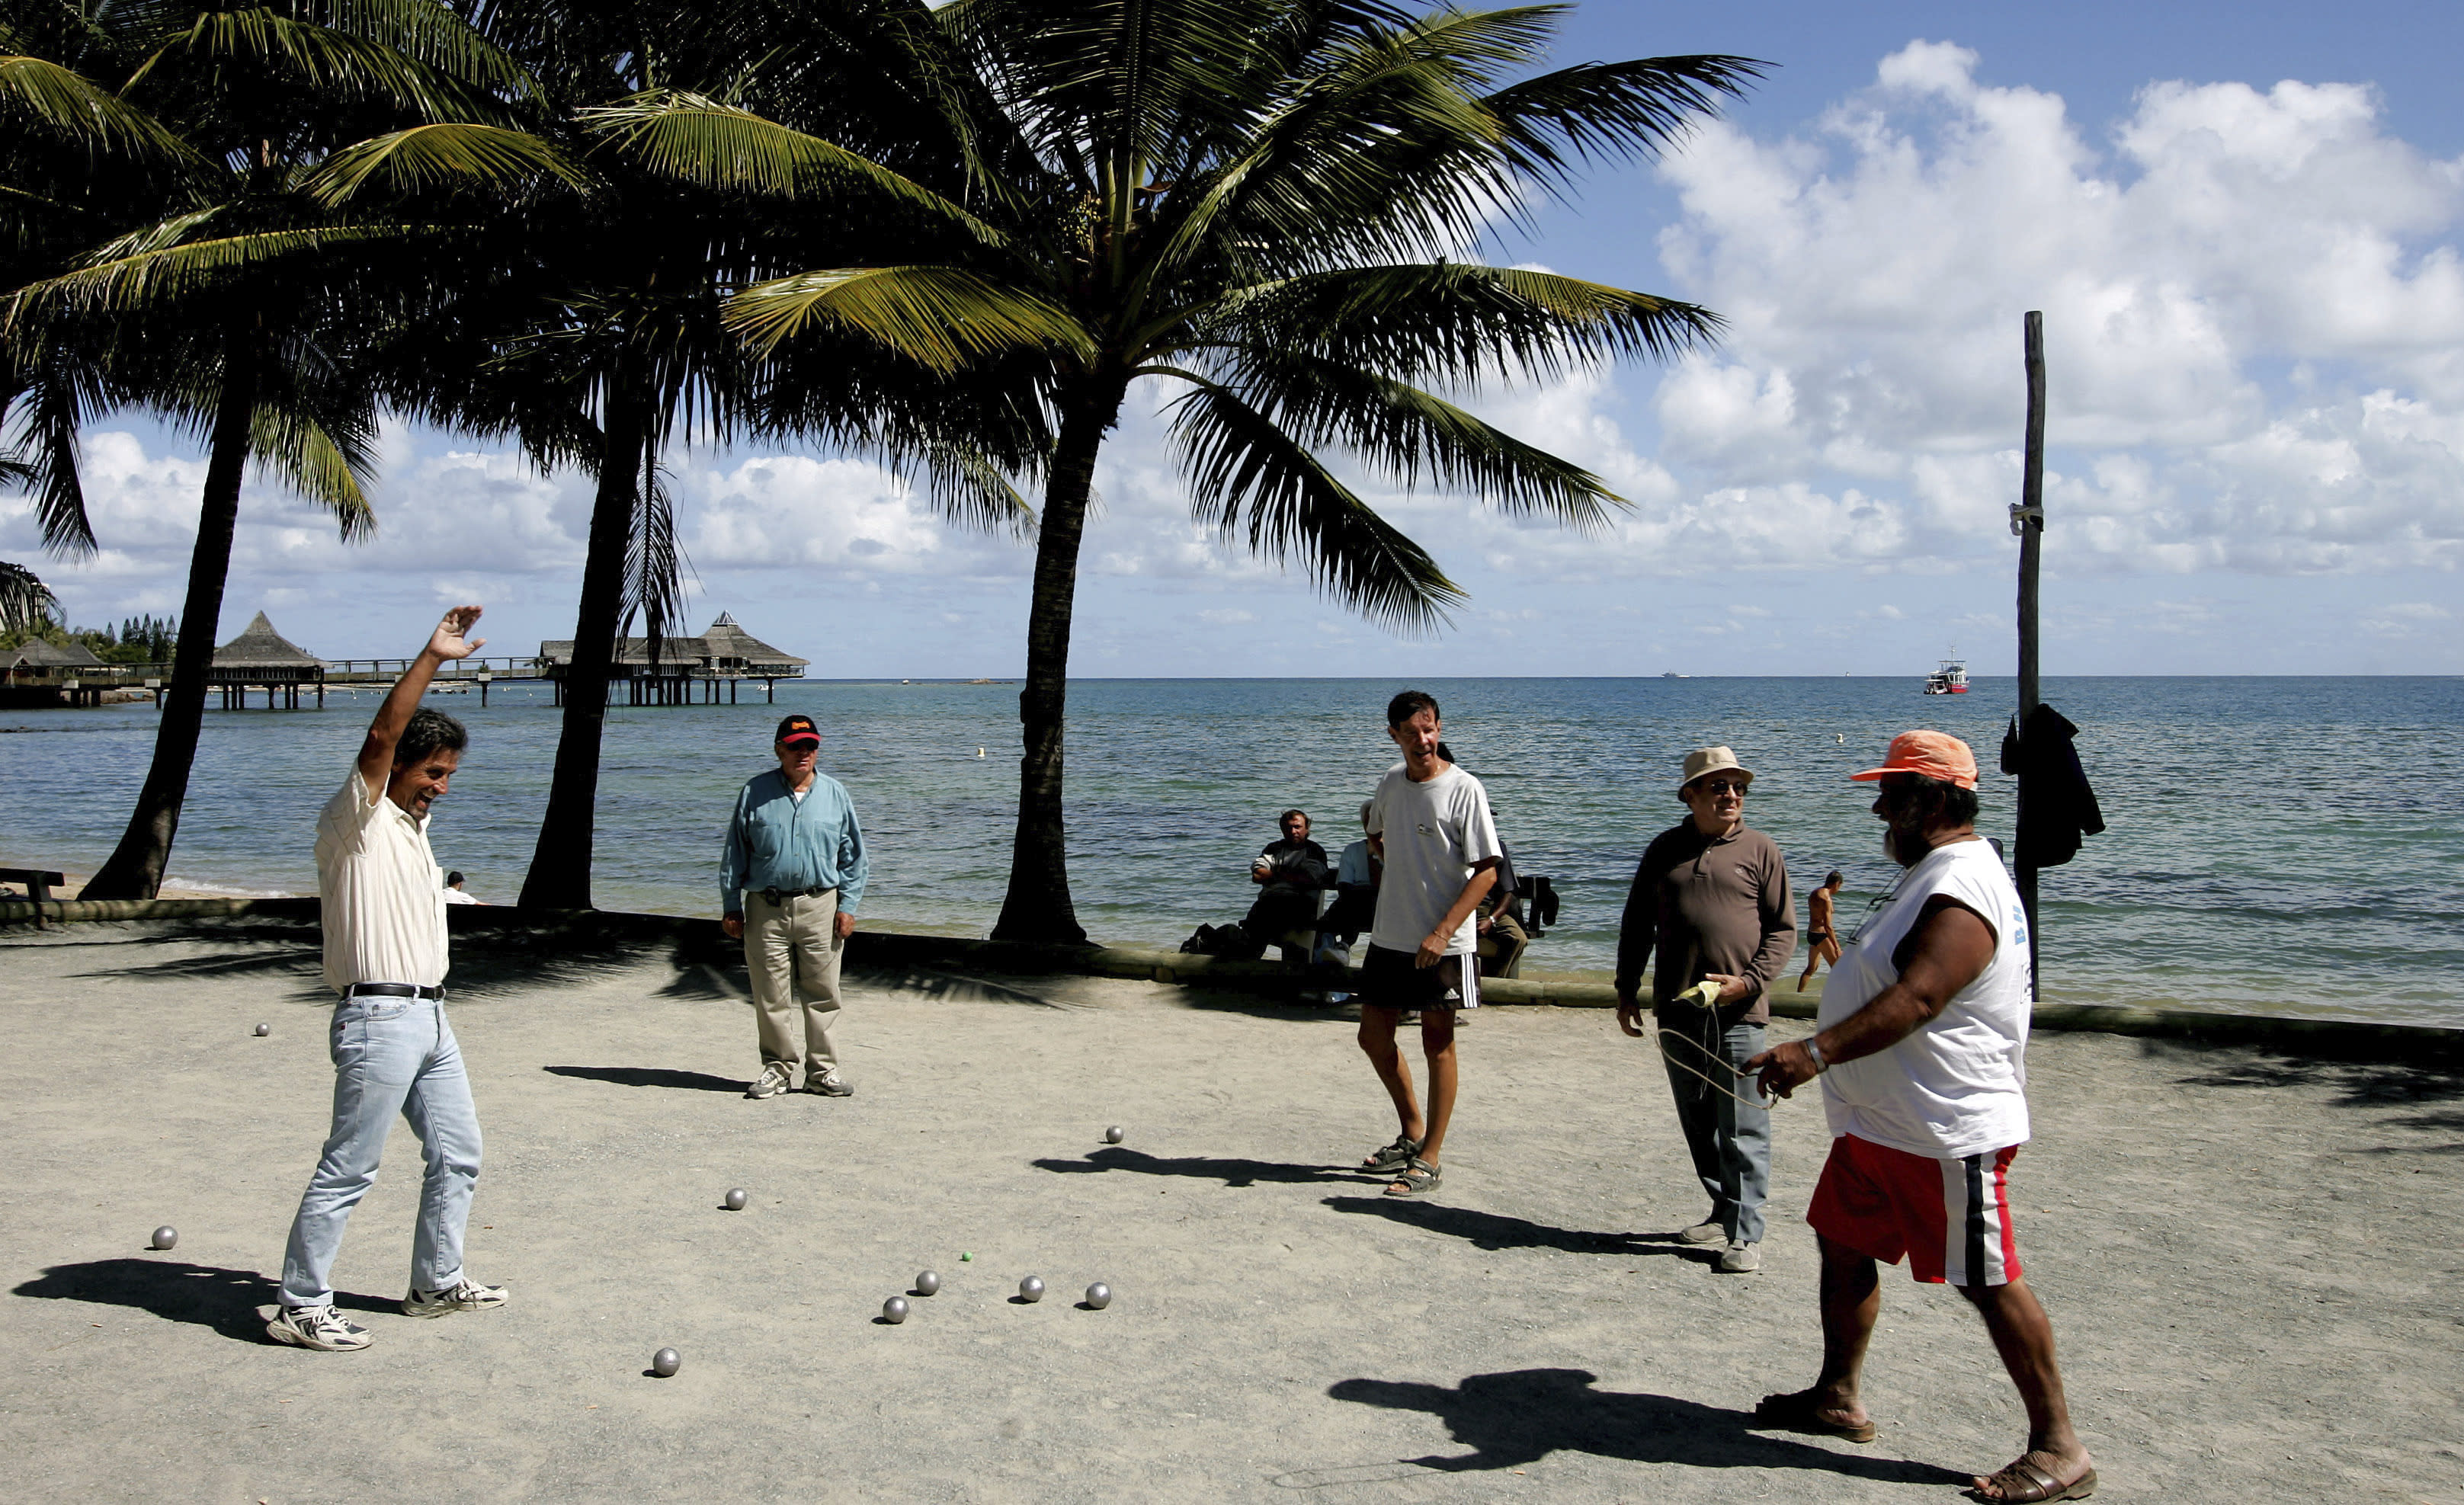 """FILE - In this Thursday, Sept. 22, 2005 file photo, locals on the beach in Noumea, New Caledonia, play the traditional ball game """"petanque"""". Voters in New Caledonia, a French archipelago in the South Pacific, are to choose whether they want independence from France in a referendum that marks a milestone in a three-decades-long decolonization effort. The vote on Sunday, Oct. 4, 2020 is key to determine the future of the archipelago east of Australia and its 270,000 inhabitants, including the native Kanaks, who once suffered from strict segregation policies, and the descendants of European colonizers. (AP Photo/Rob Griffith, file)"""